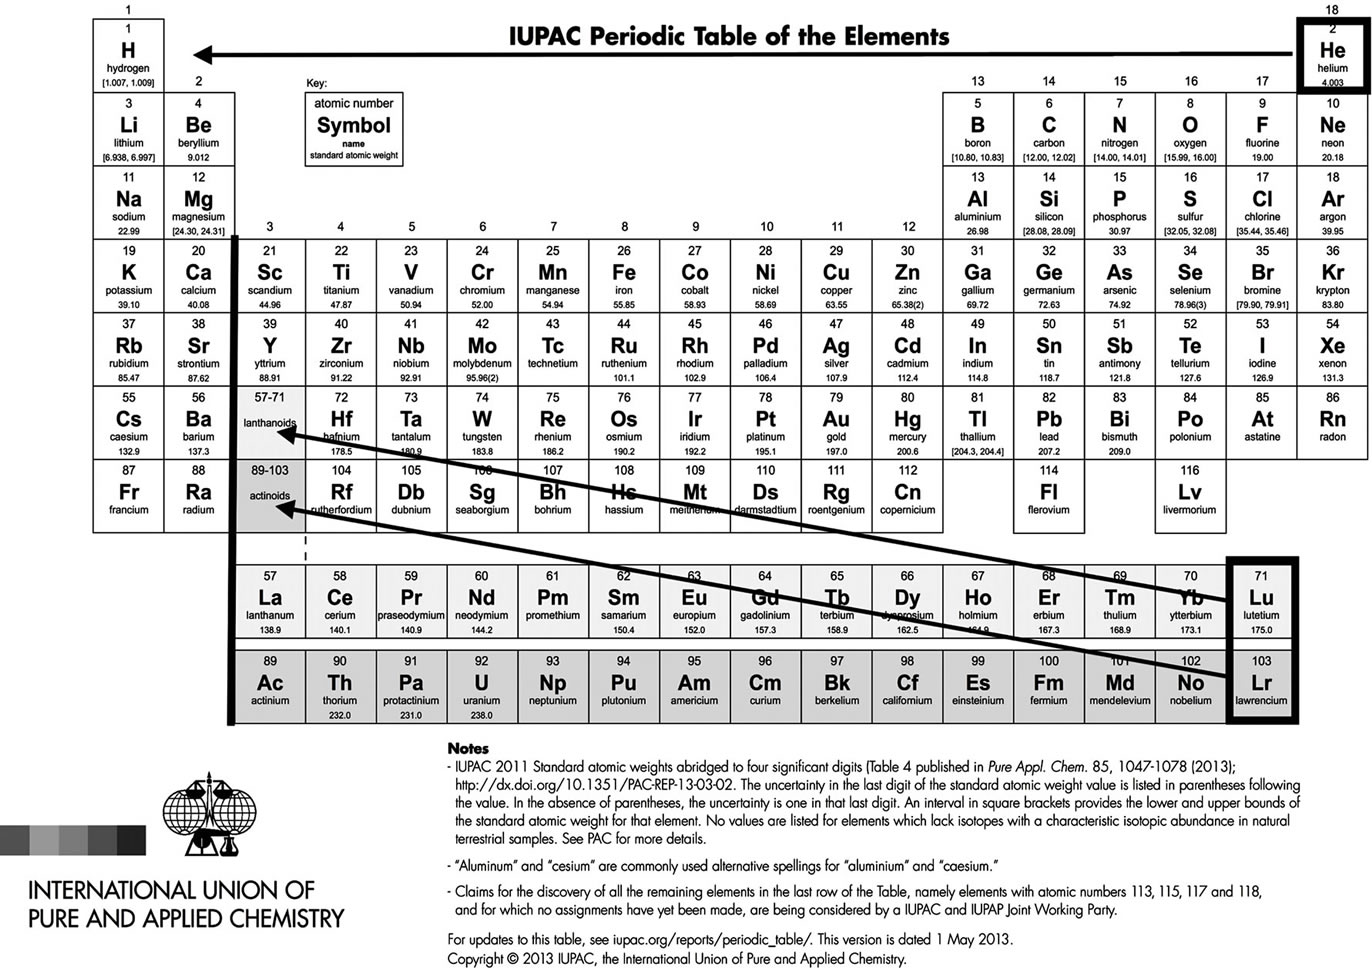 Iupac periodic table quantum mechanics consistent iupac official table with suggested corrections one can see a vacant place at the right of h contradicting the heading periodic table he should be gamestrikefo Gallery